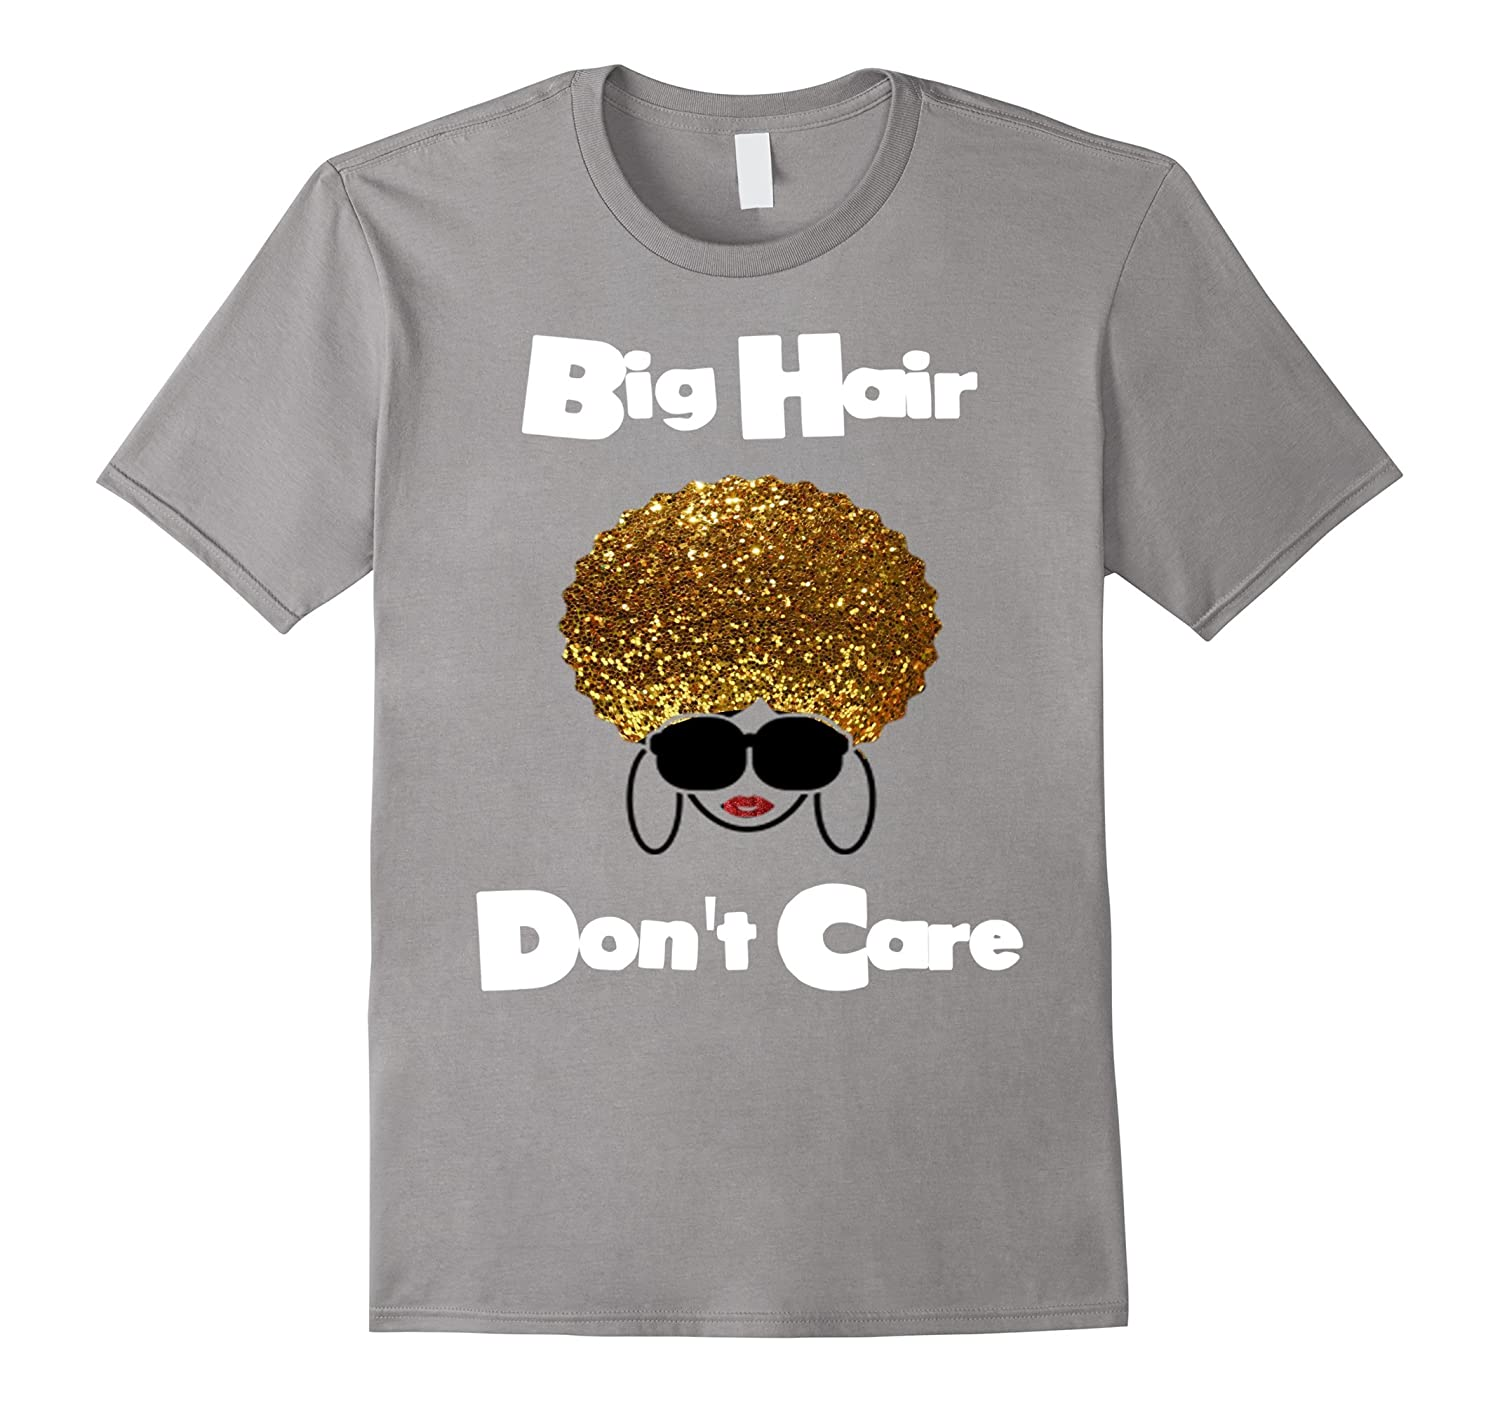 Big Hair Don't Care Shirt - Curly Hair Glam Glitter Inspired-BN